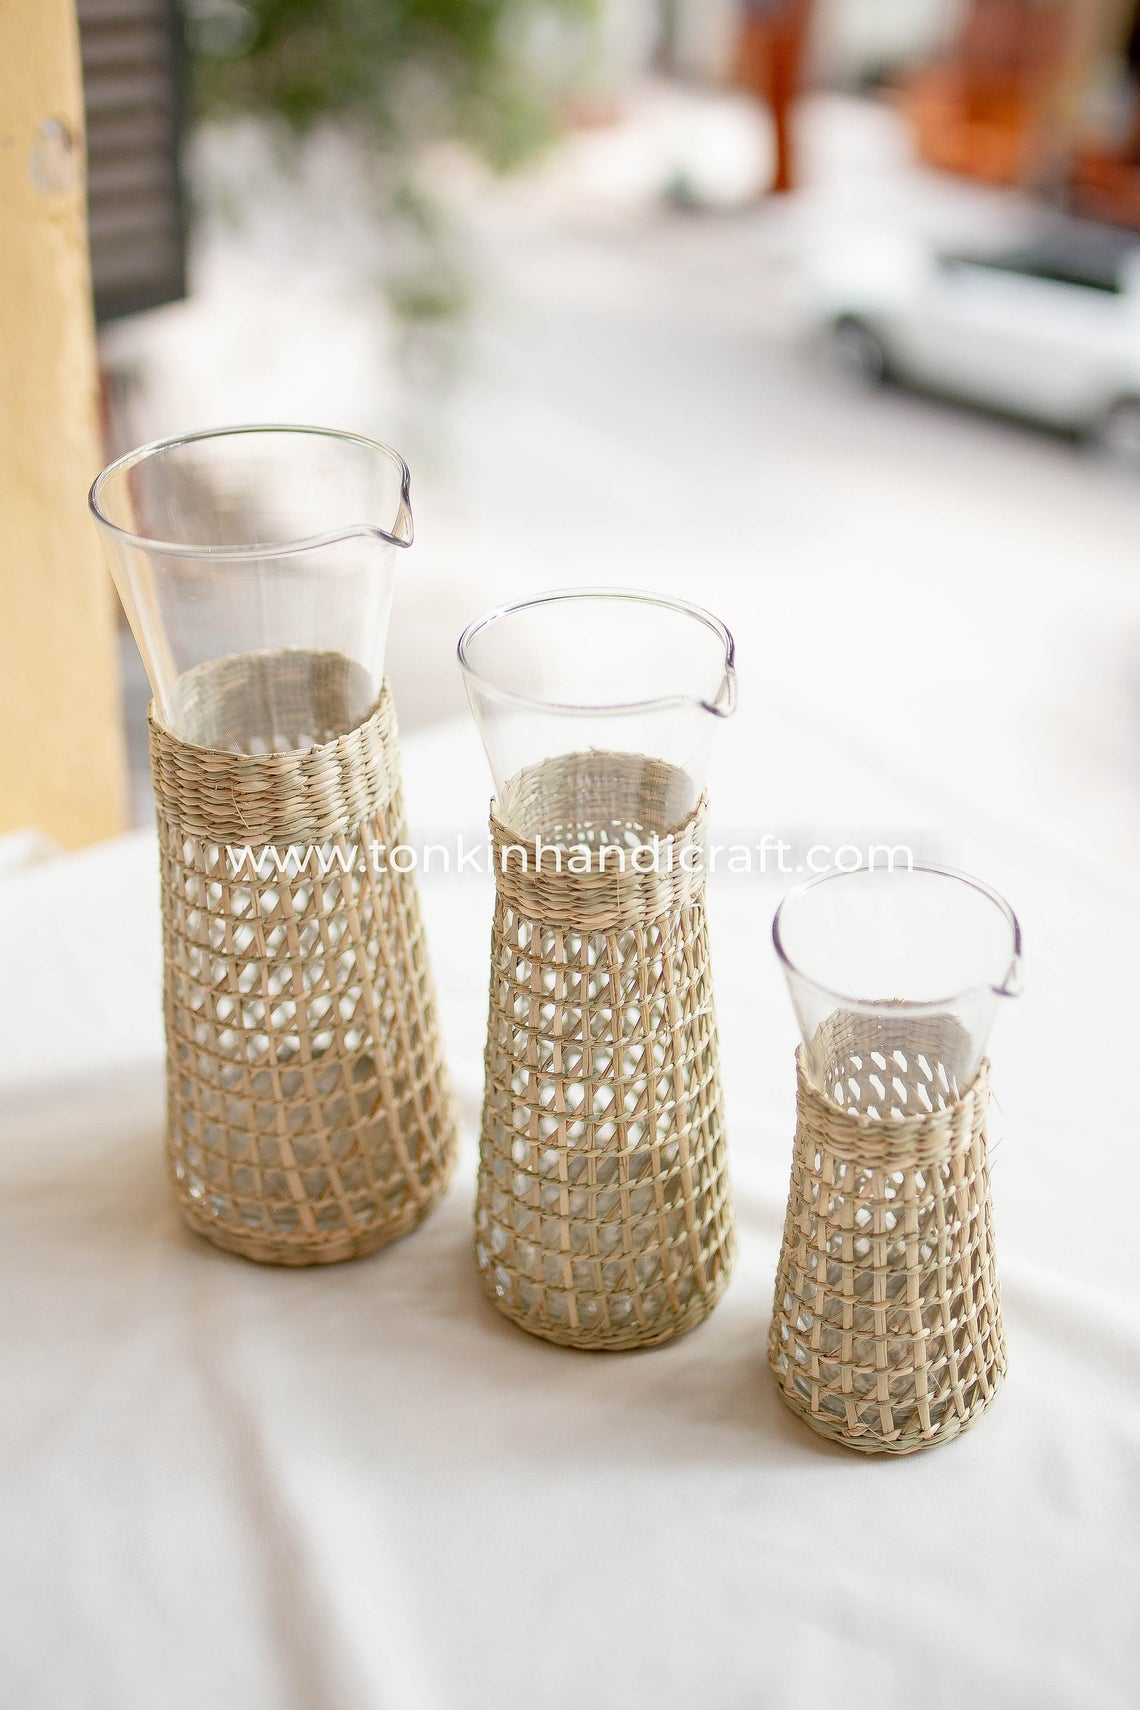 Bistro Carafe, Seagrass-Wrapped Pitcher